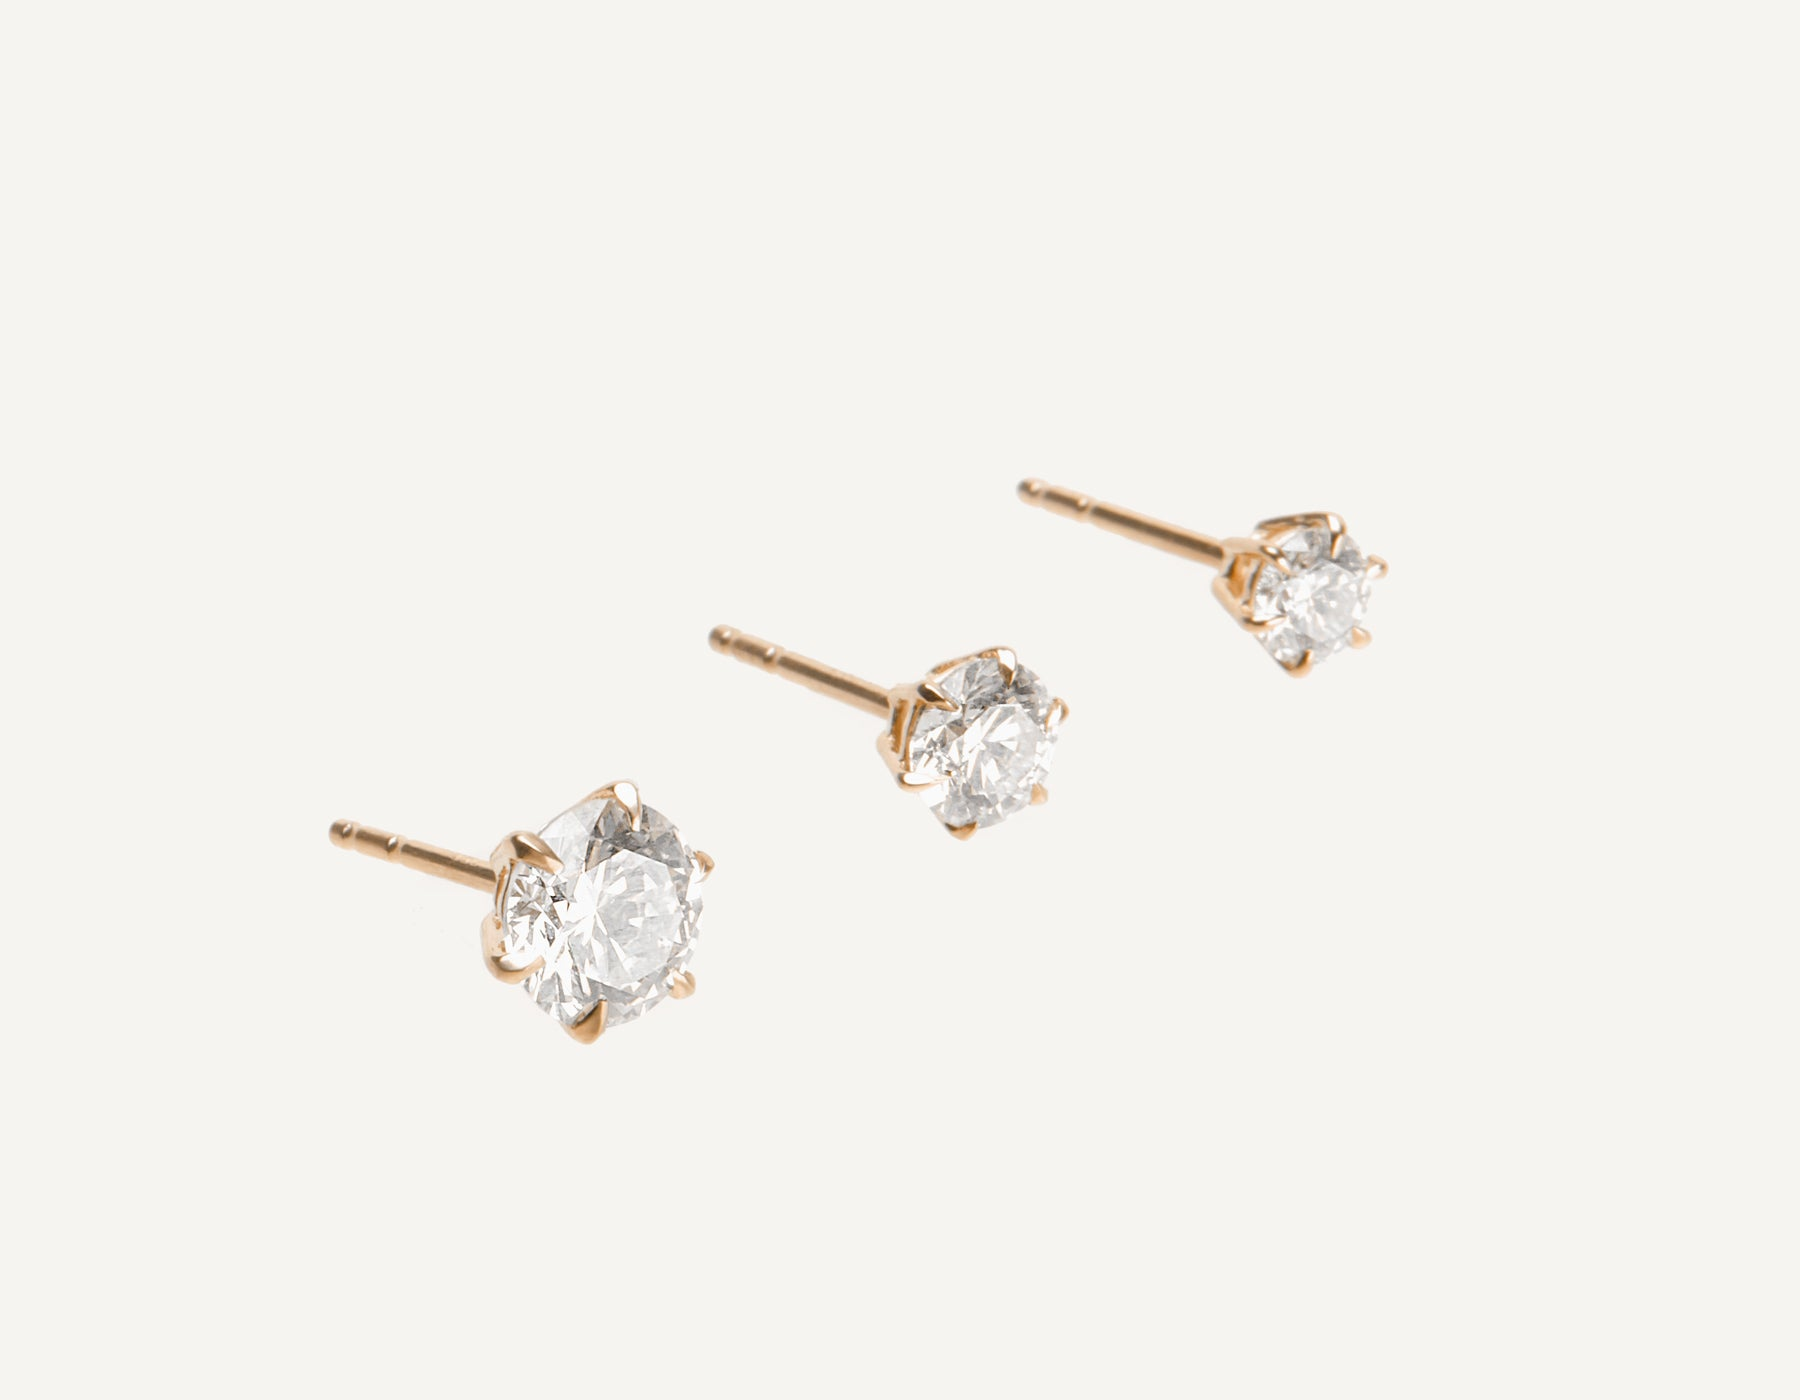 Vrai & Oro 18K Solid Gold Round Brilliant Diamond Earring Post 1 ct .50 ct .25 ct, 18K Rose Gold